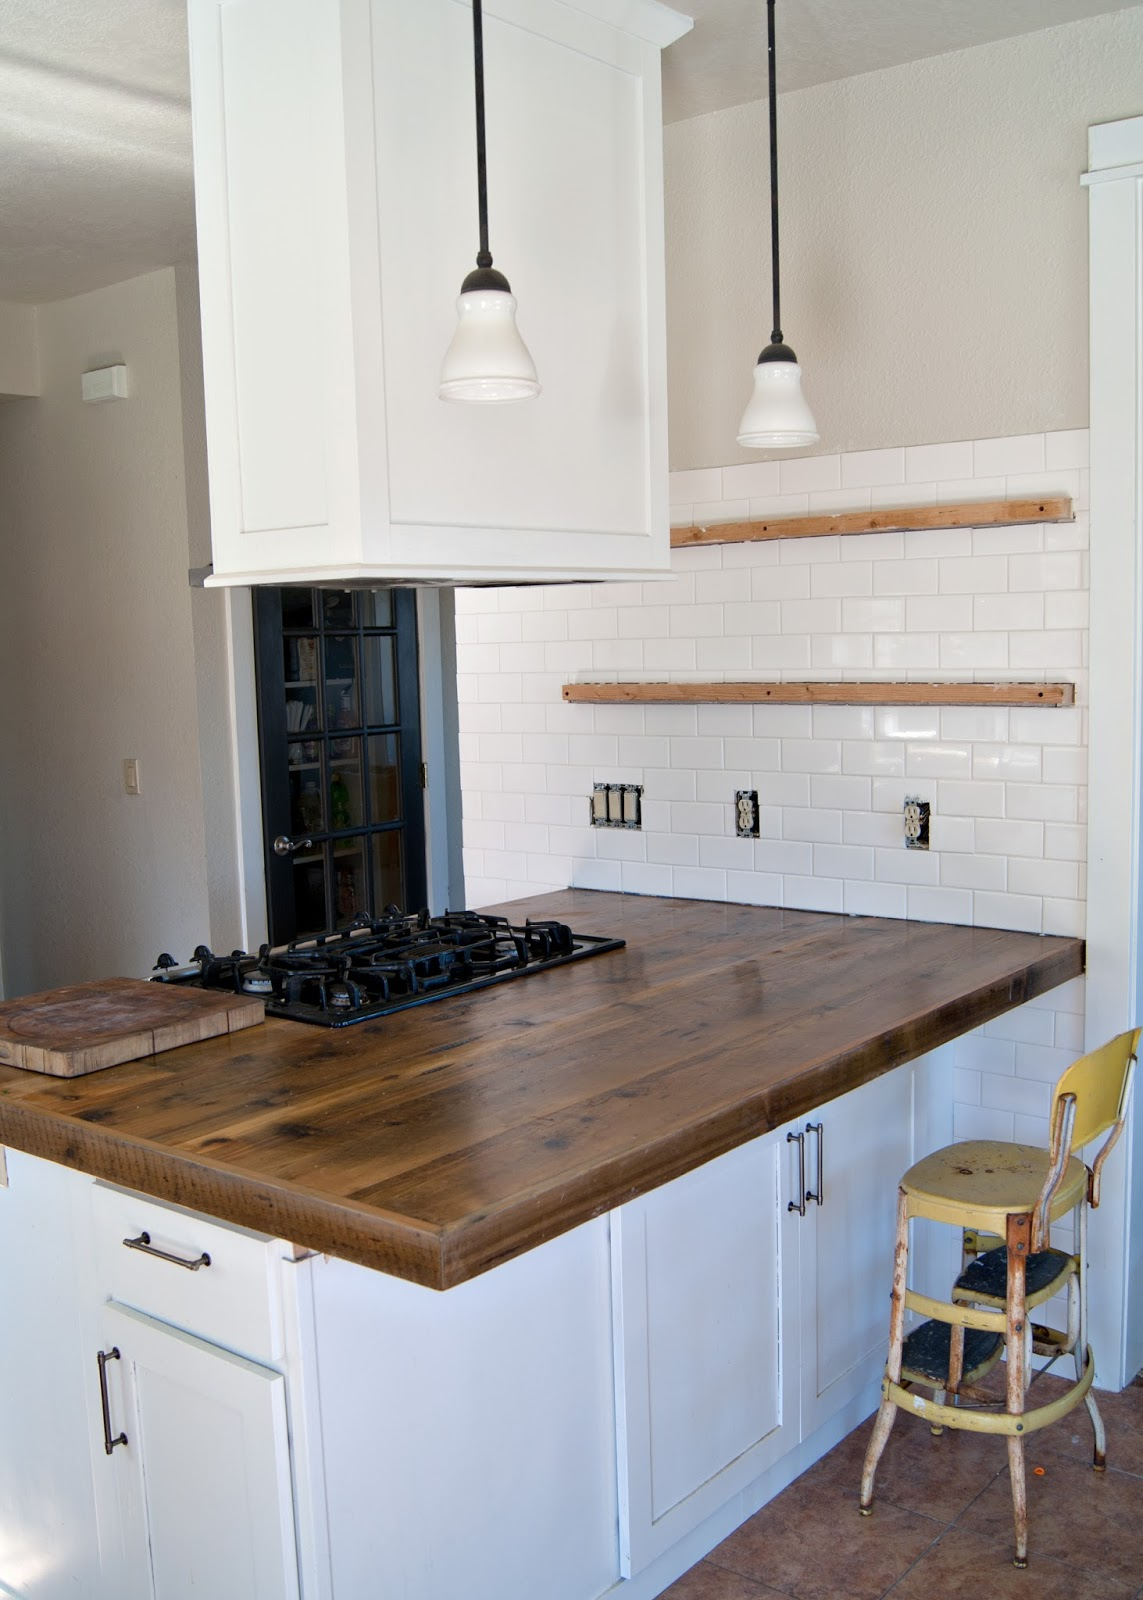 Subway tile installation tips on grouting with fusion pro the dailygadgetfo Choice Image